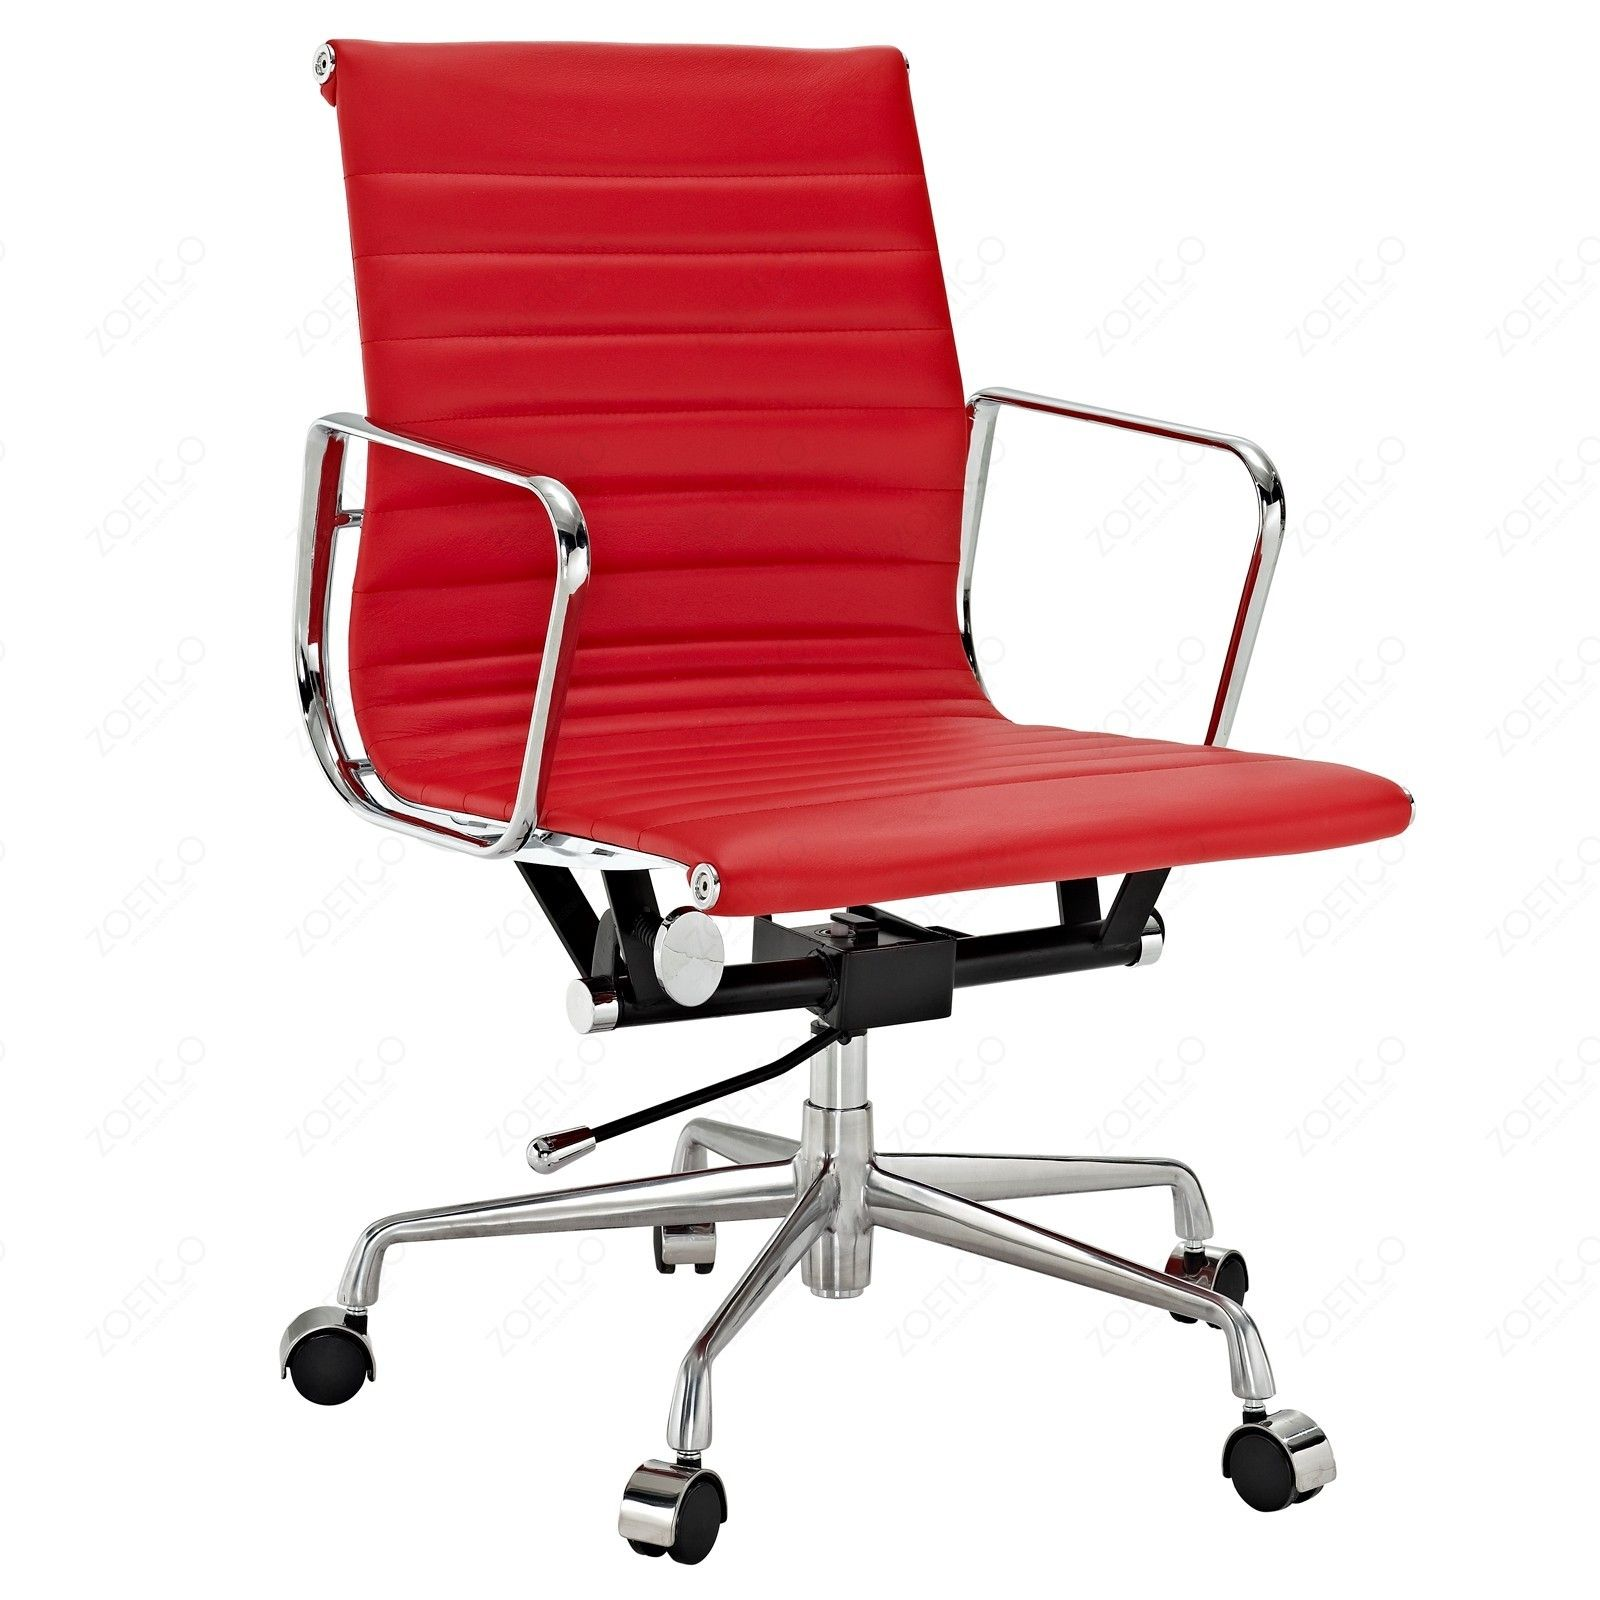 of chairs red review best computer office desk ikea i size chair furniture medium